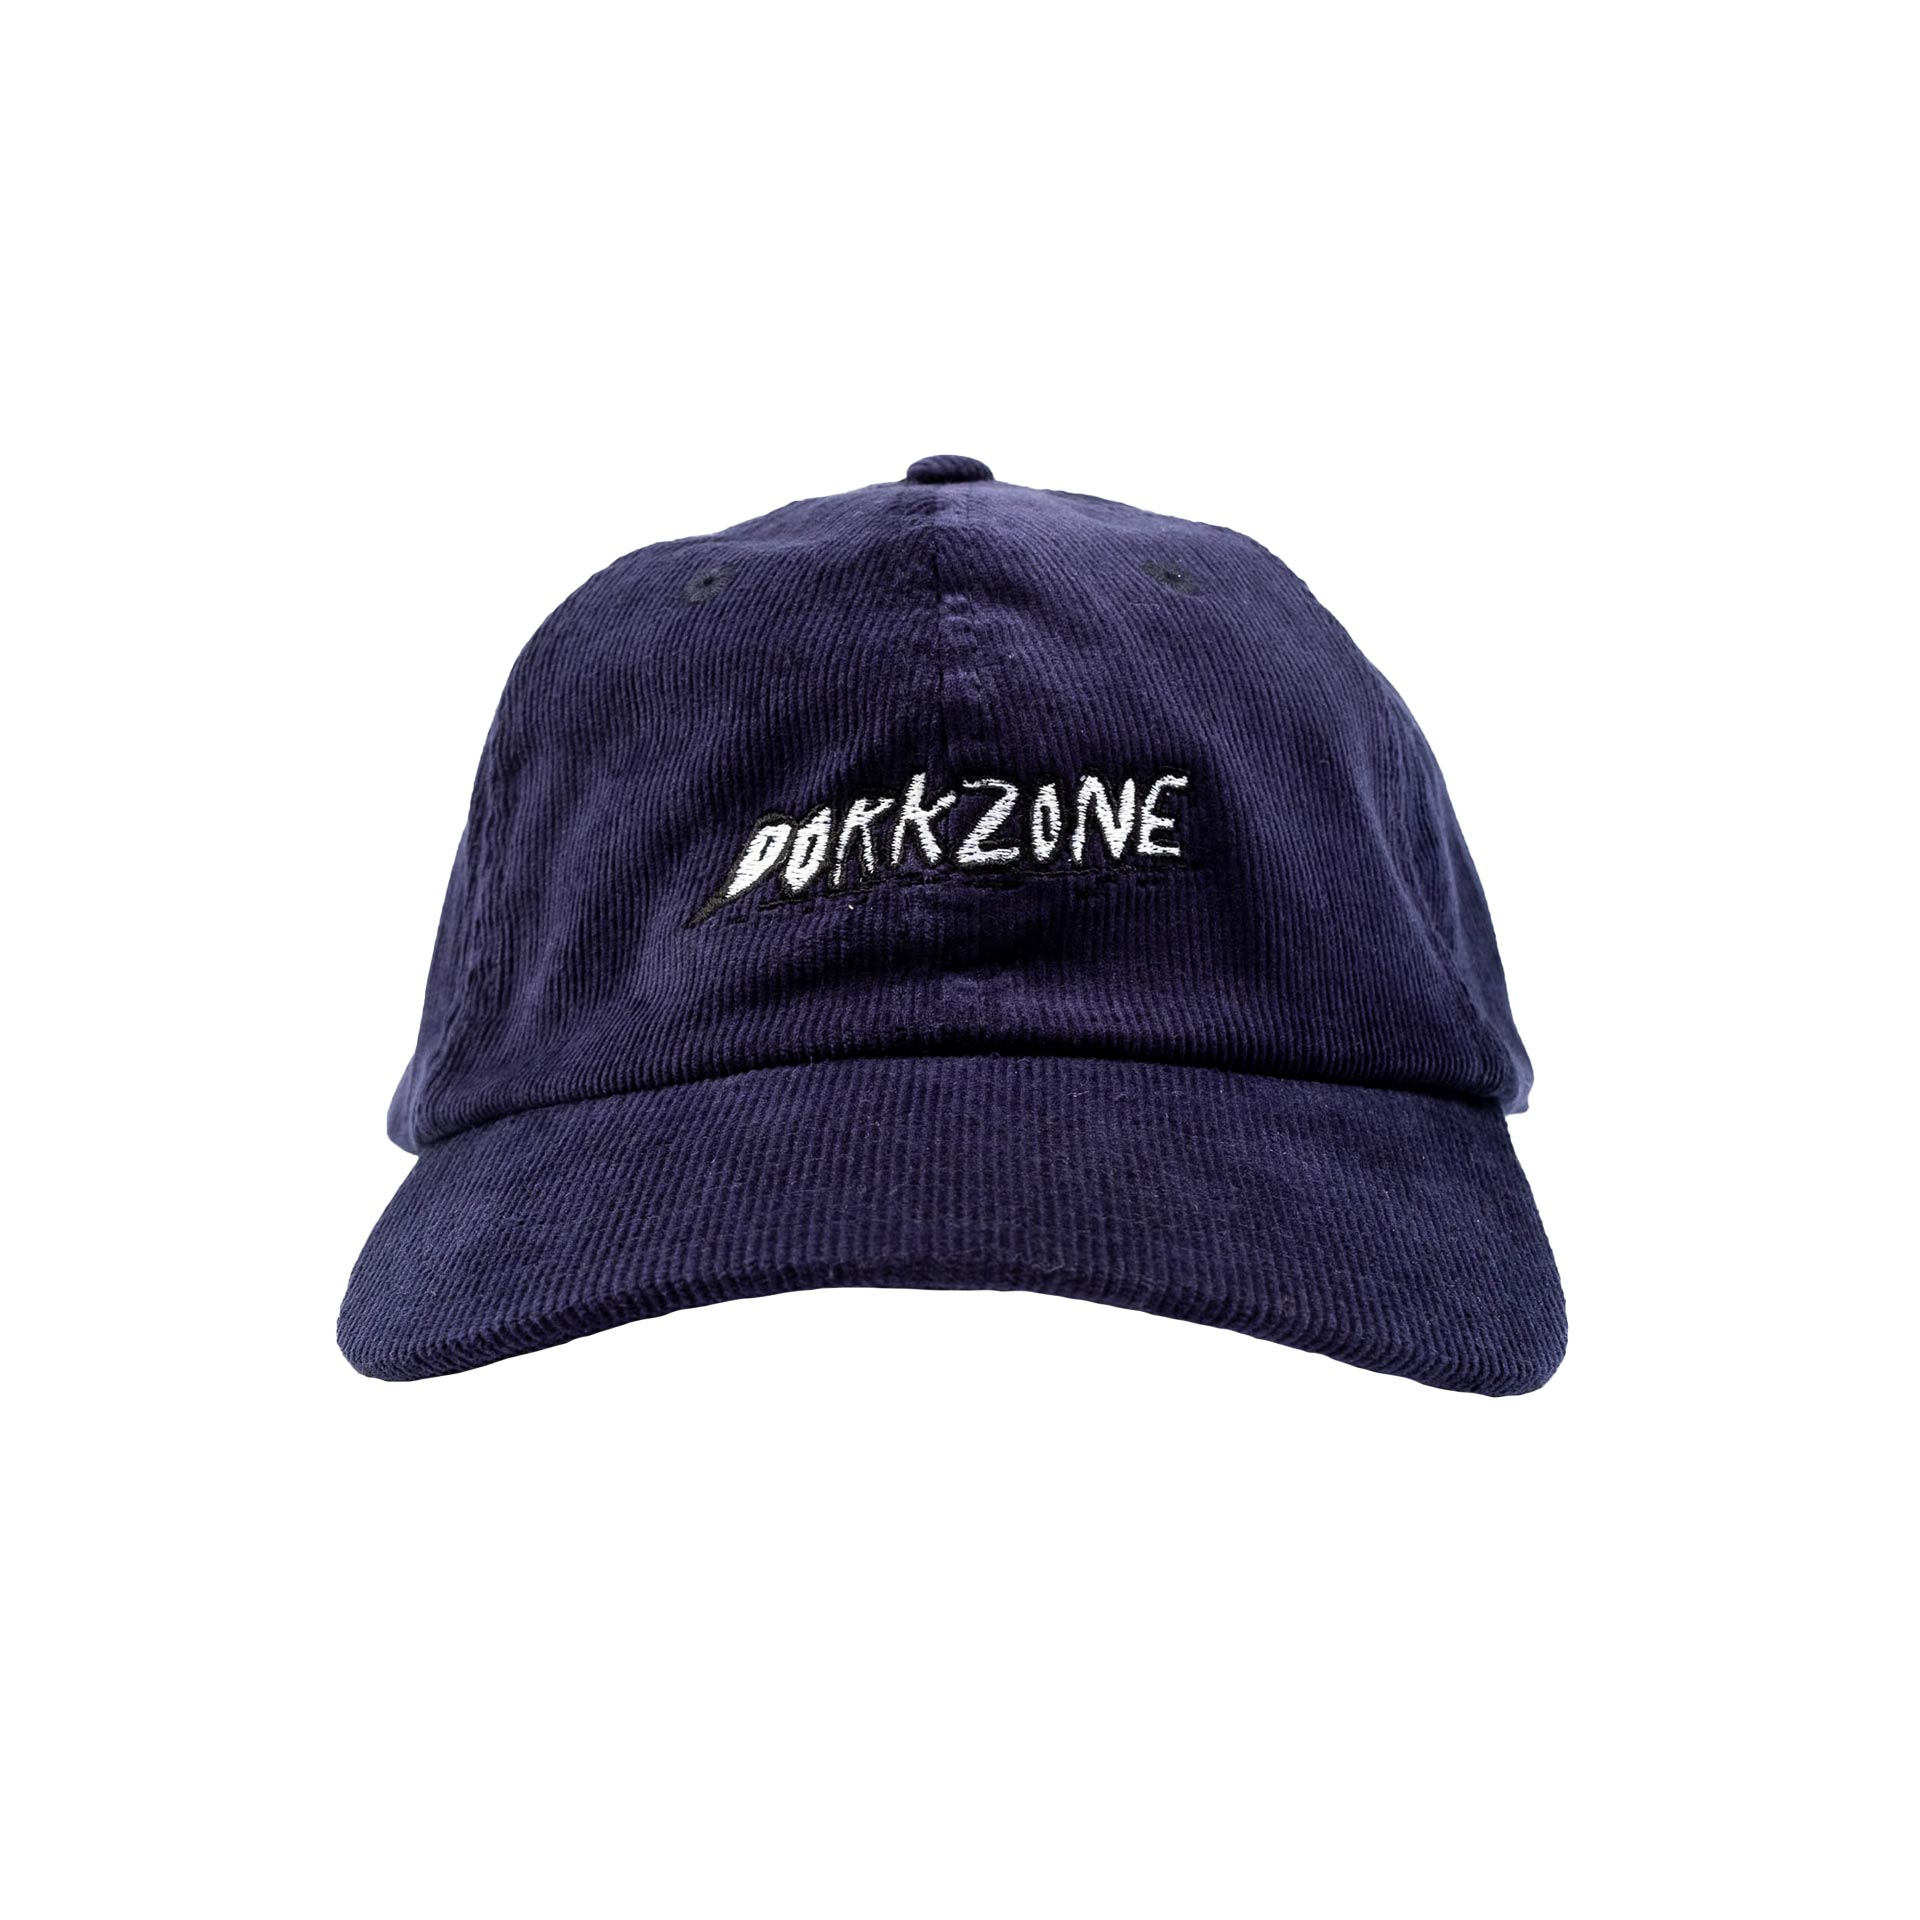 Dorkzone Embroided Ink Text Corduroy Cap Navy